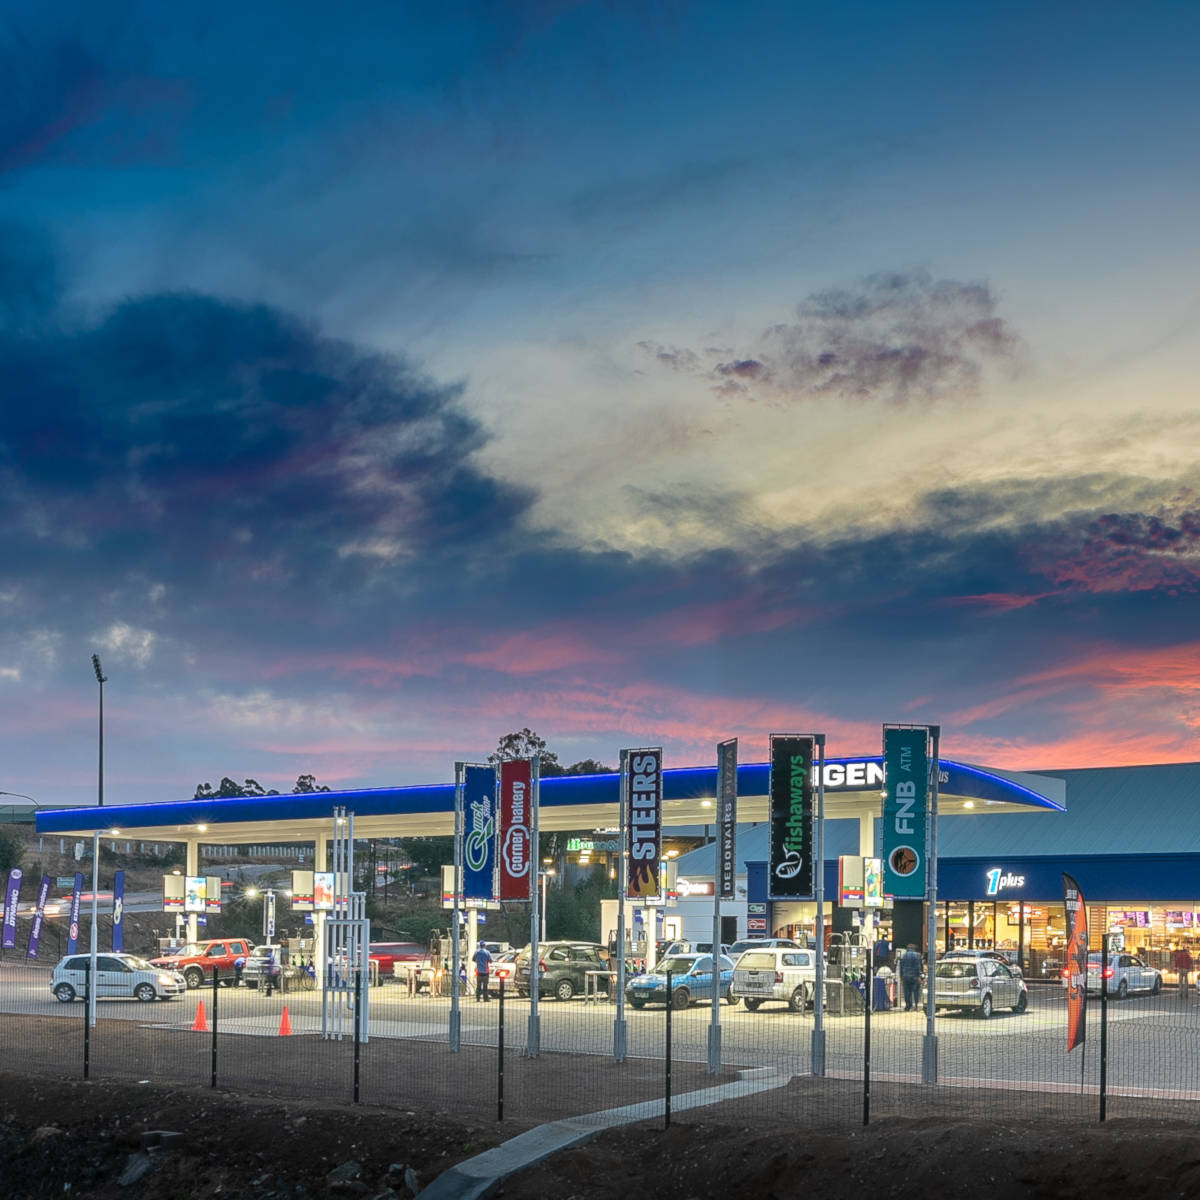 Engen Ikwezi Convenience Centre in Mthatha, South Africa